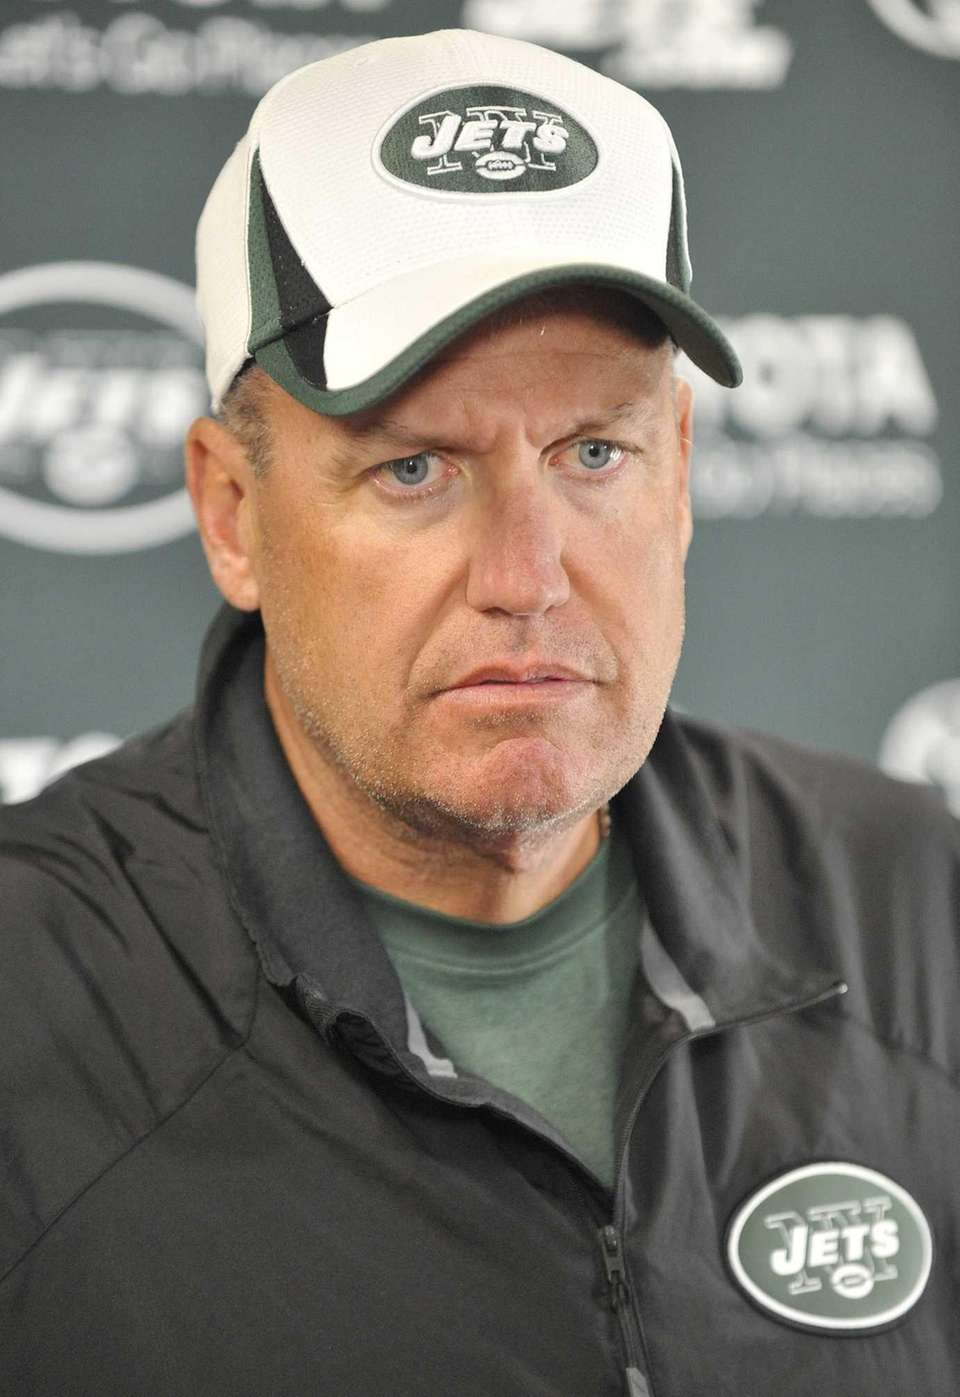 Jets head coach Rex Ryan during training camp.